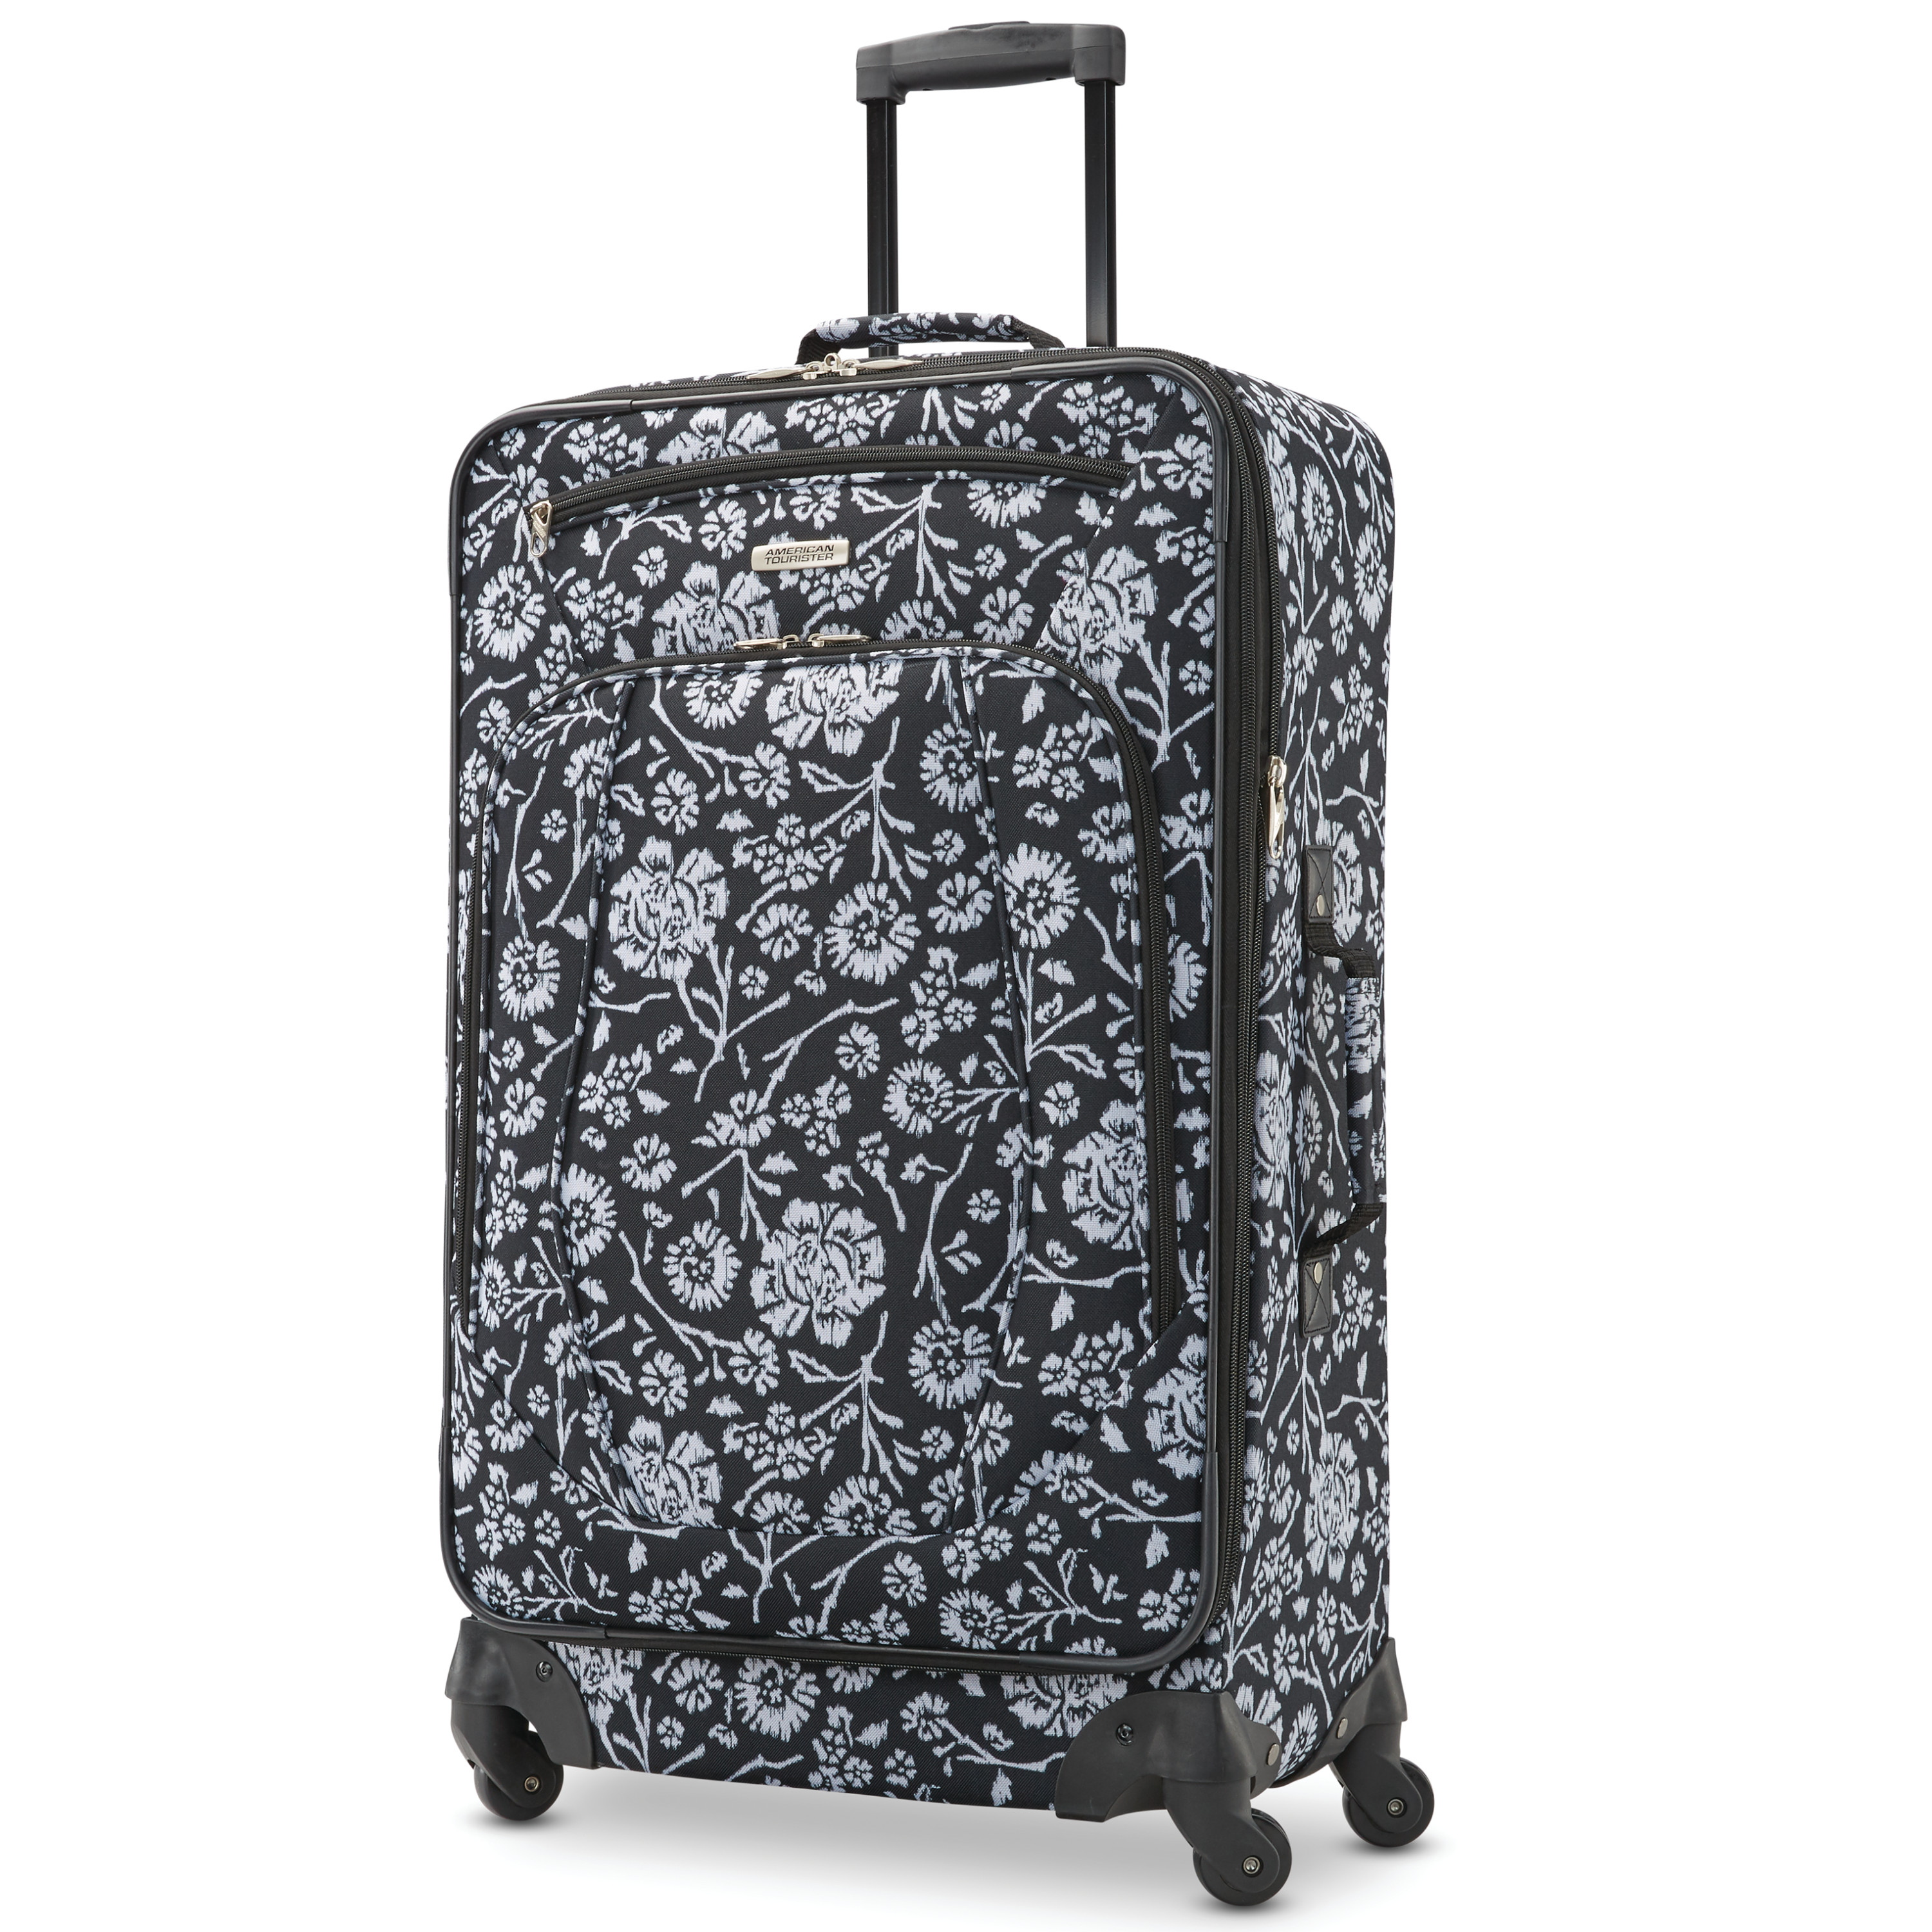 American-Tourister-Riverbend-4-Piece-Set thumbnail 12